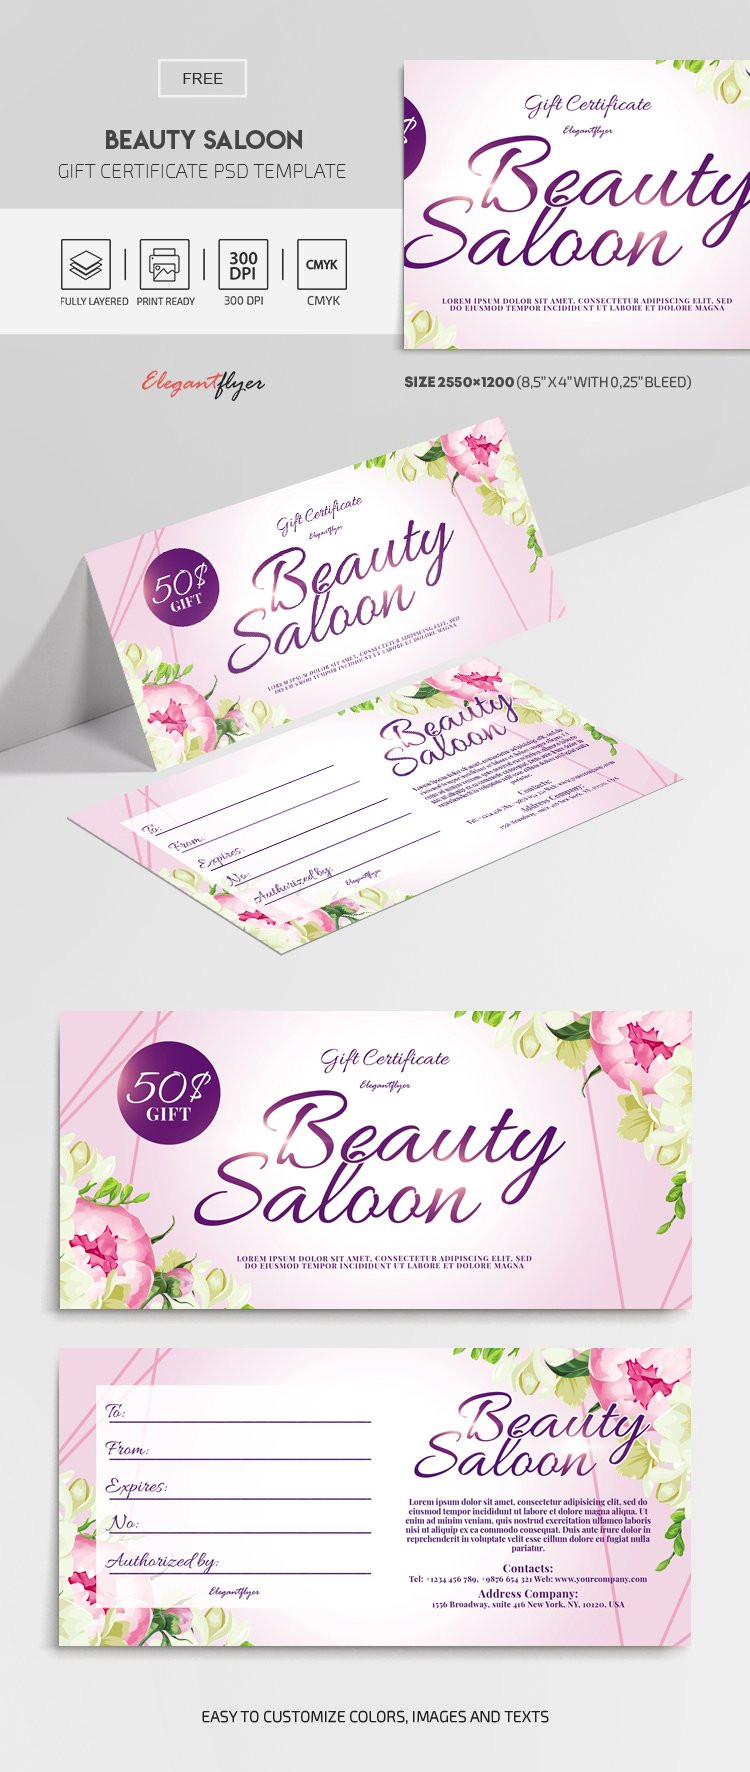 Free Gift Certificate Template